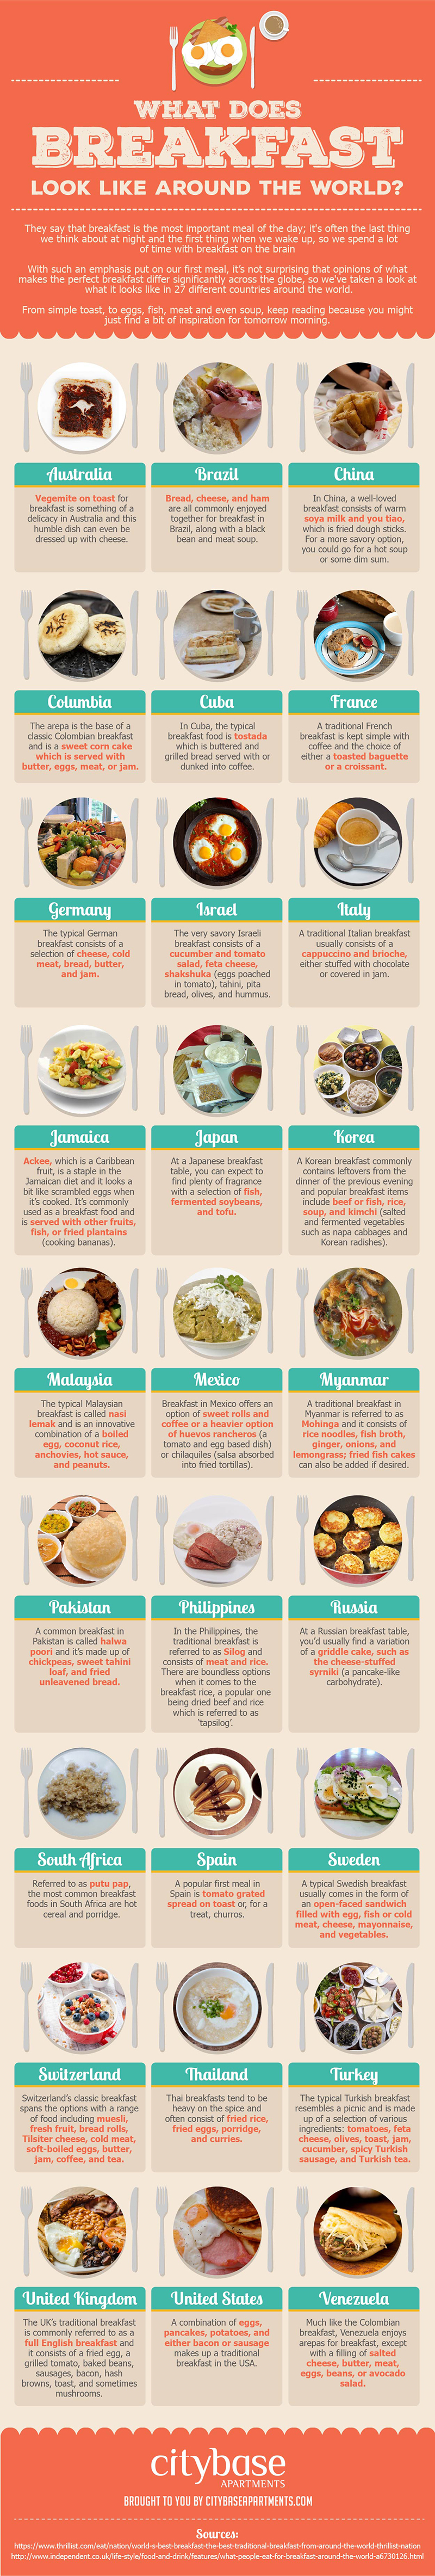 What Does Breakfast Look Like Around The World [Infographic]